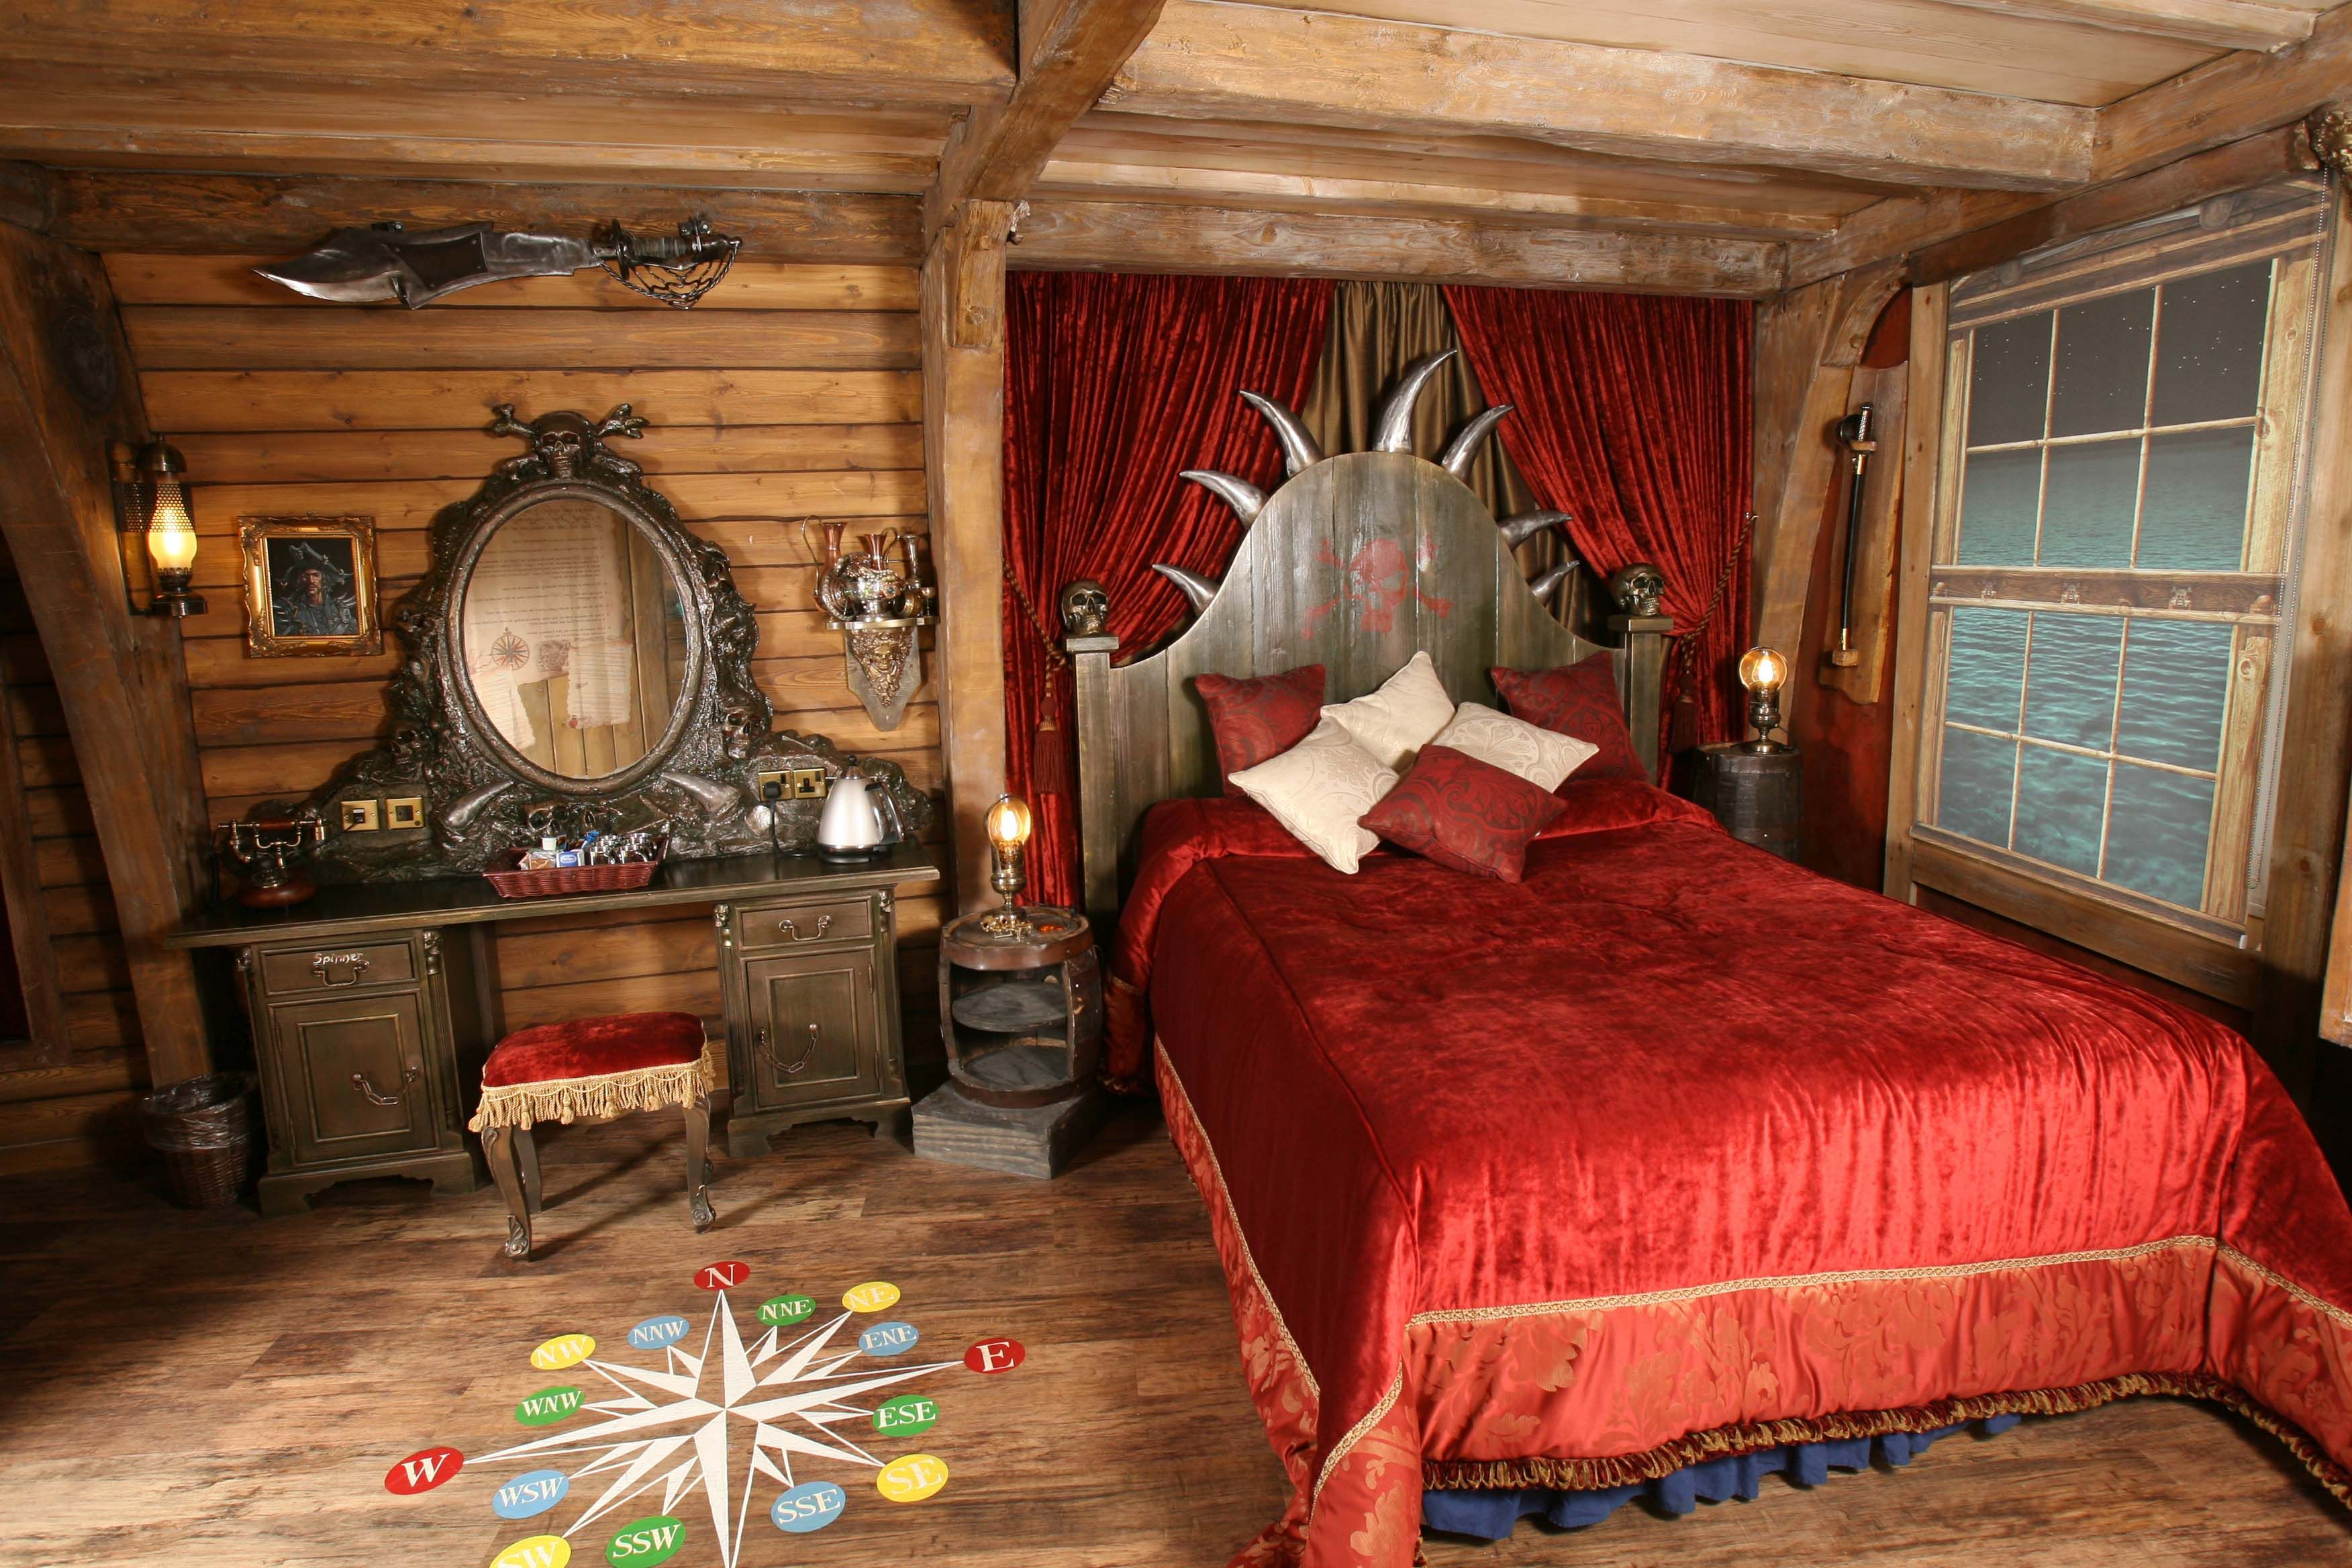 Pirate Hotel Rooms  Pirate Themed Room  Alton Towers